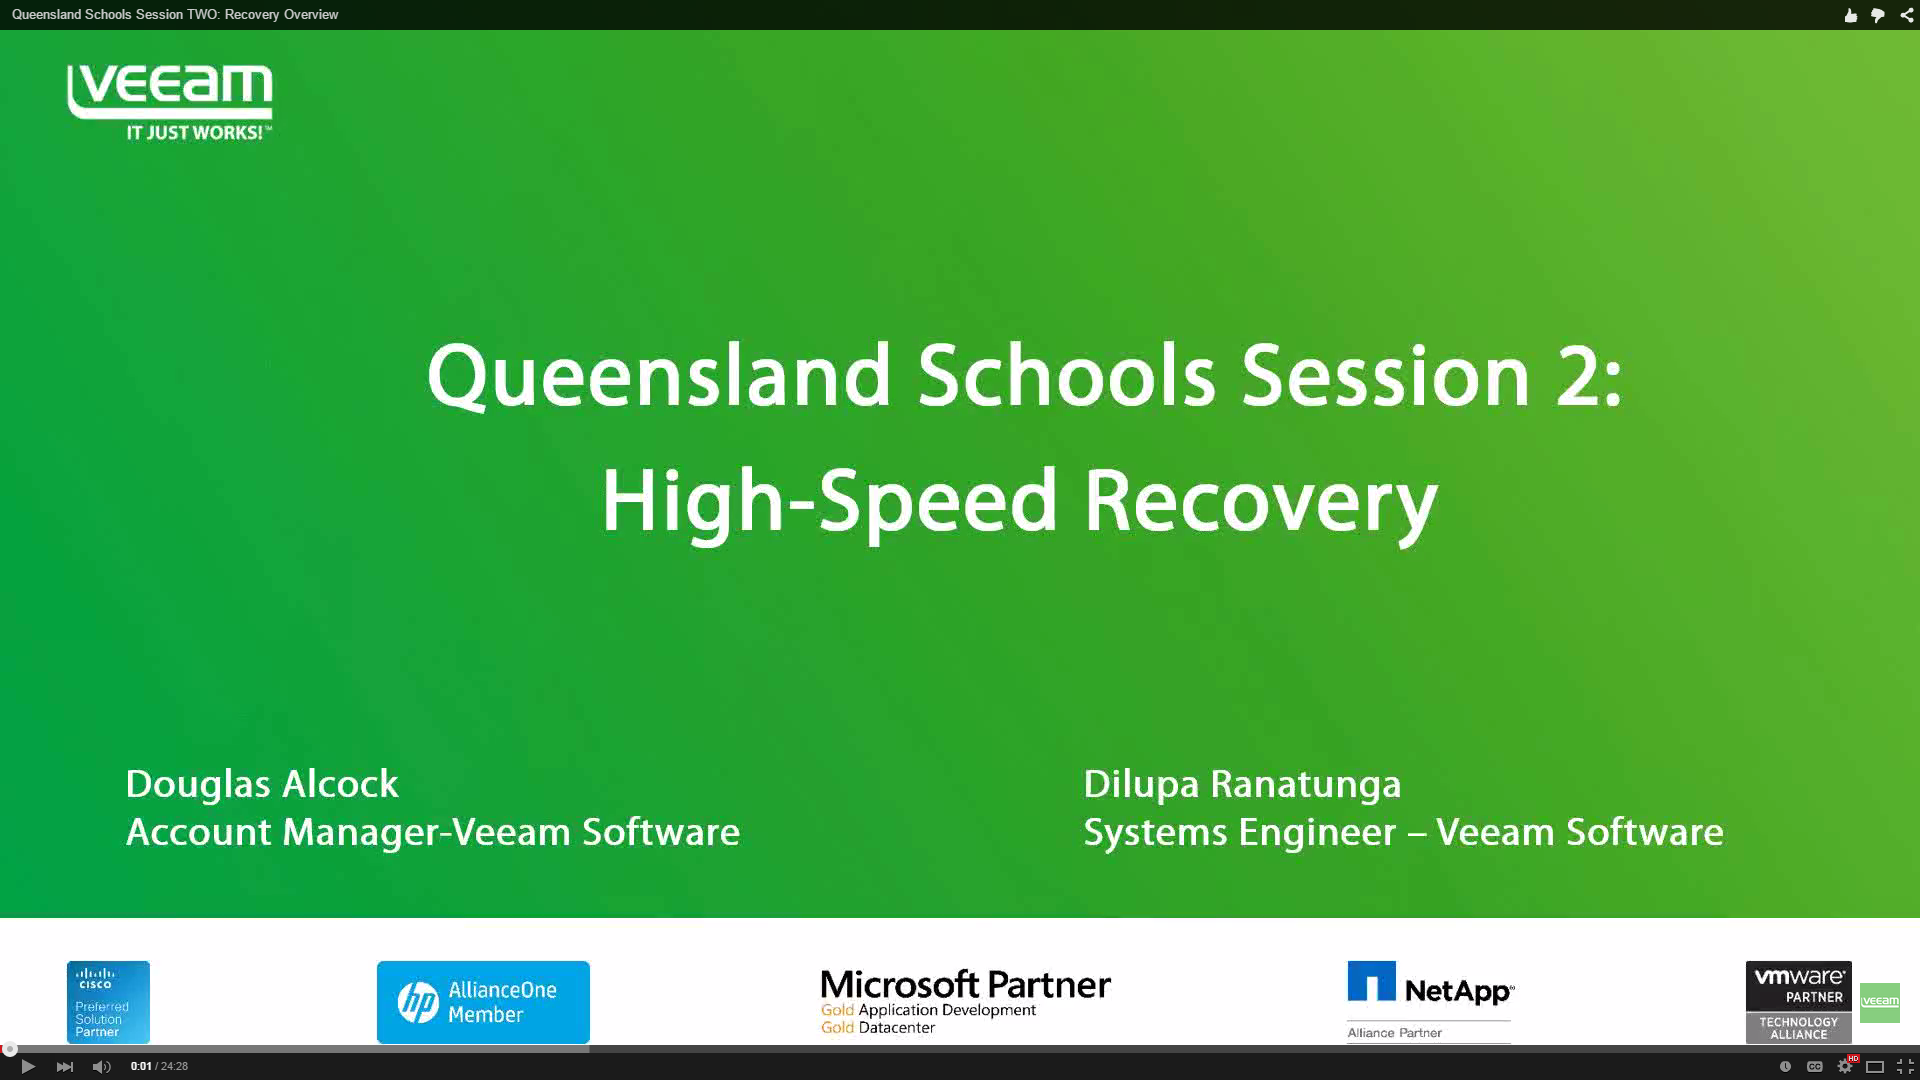 Queensland Schools Session TWO: Recovery Overview